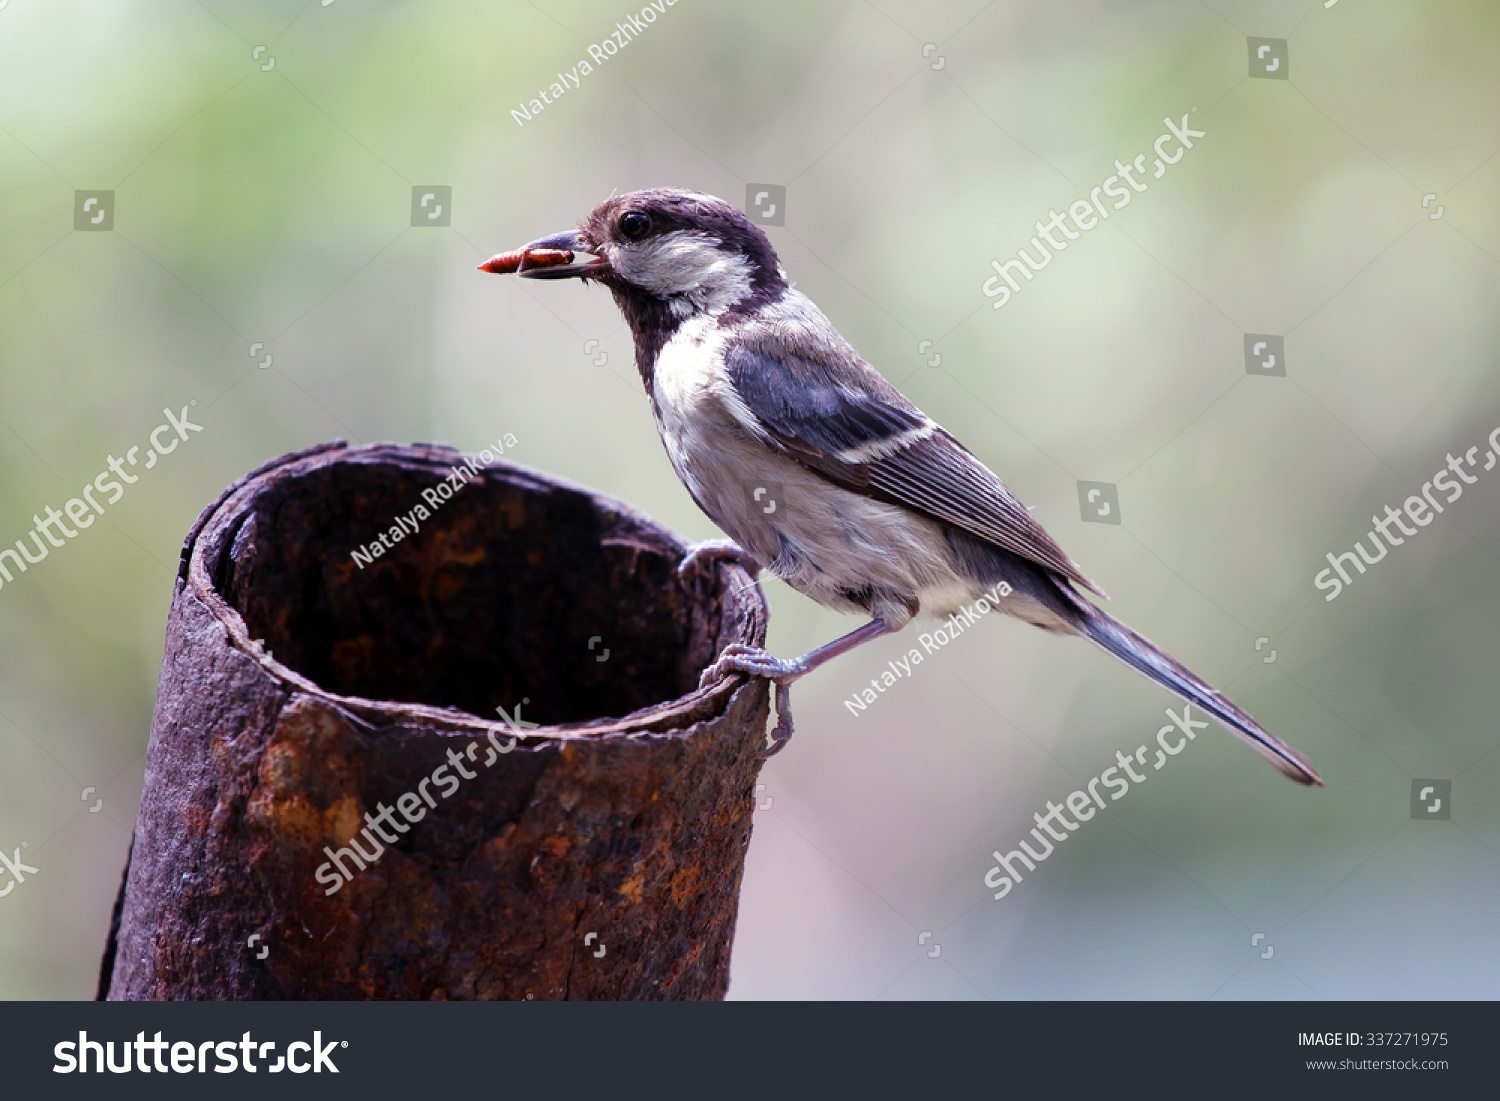 Lactating tit, Tit mom in winter with a caterpillar feeding Chicks, Parus  major,